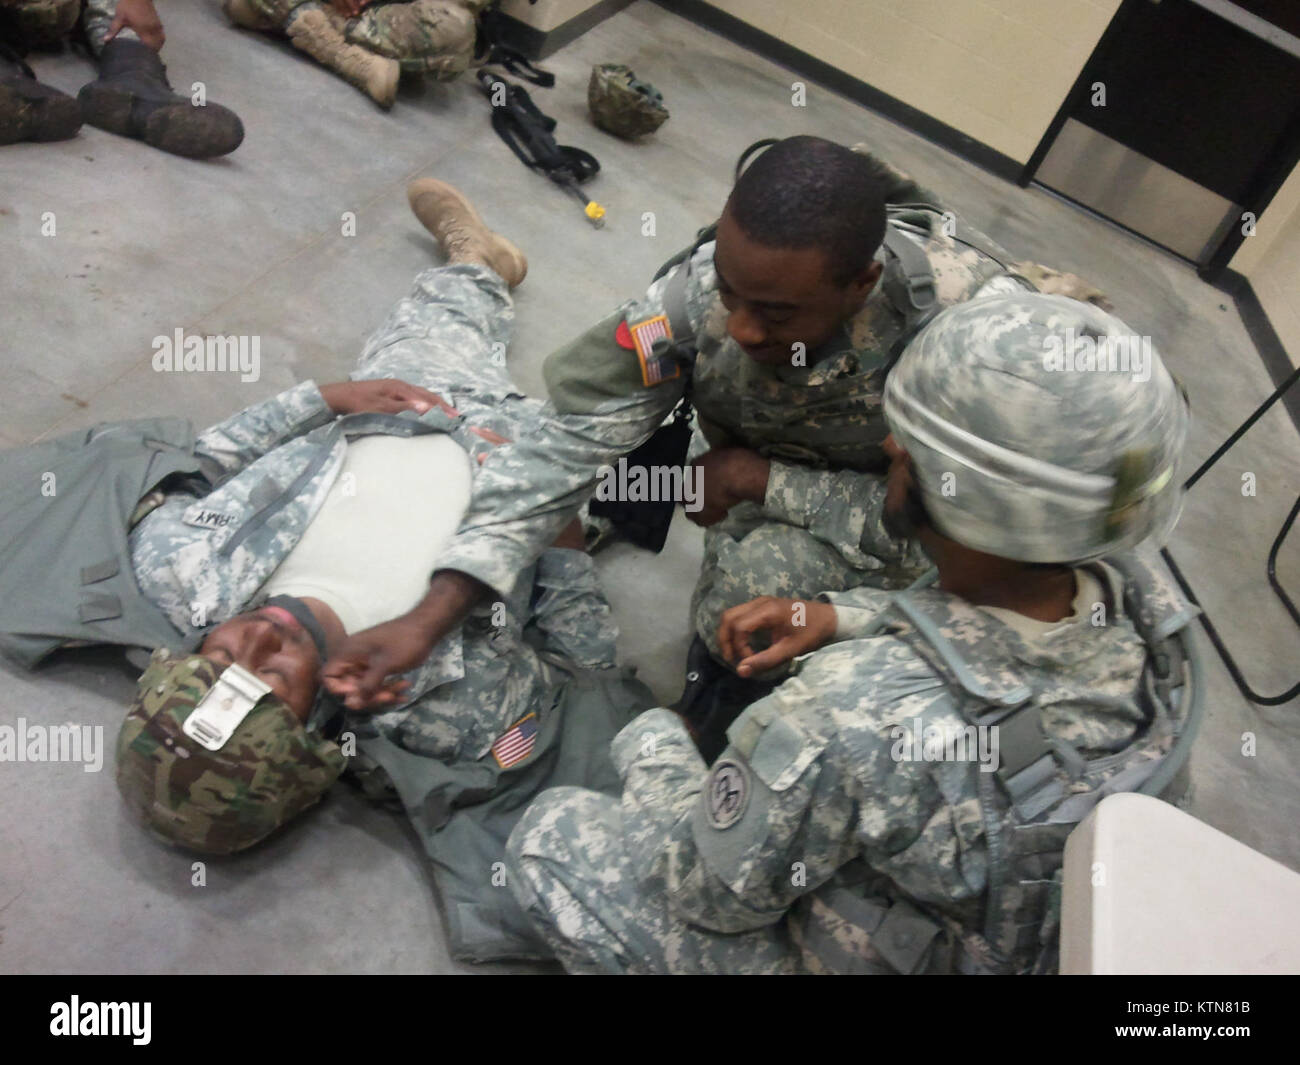 FORT DRUM- Soldiers assigned to the 101st Expeditionary